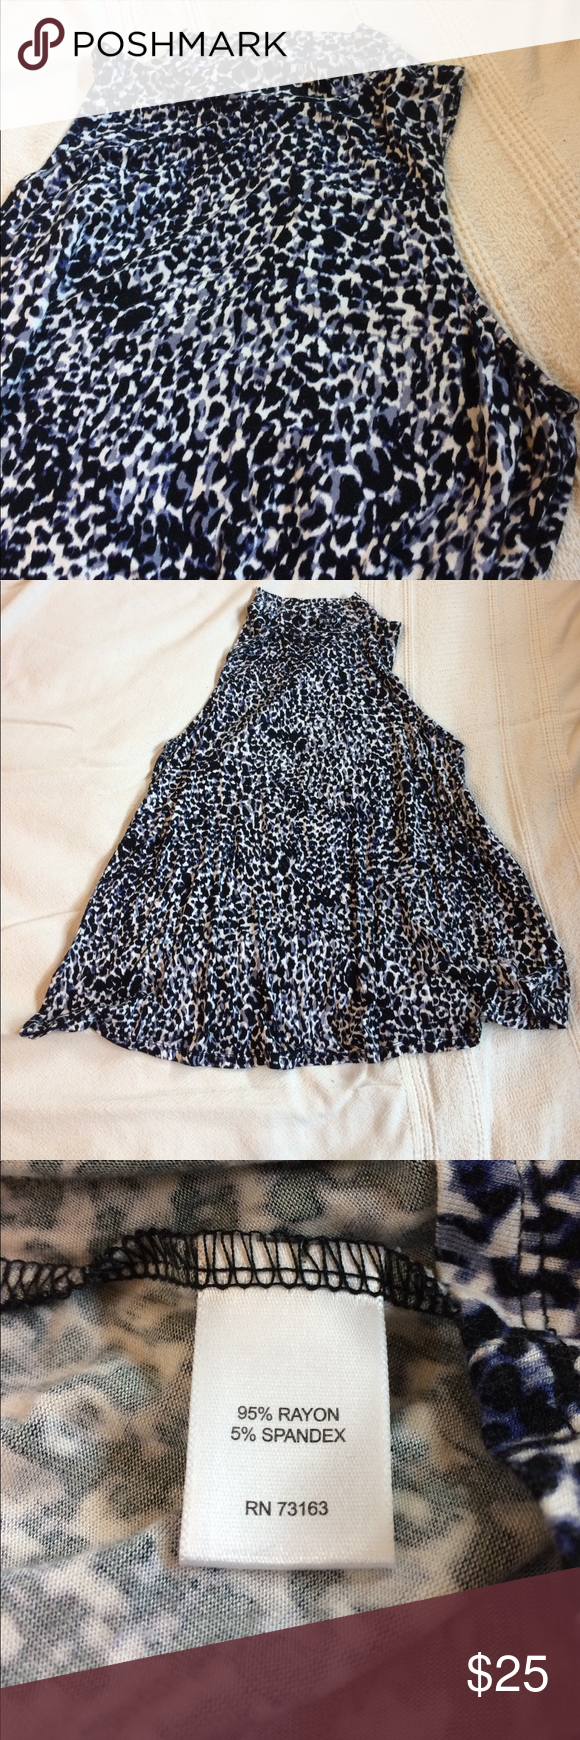 Tunic Tank with Mock Turtleneck Animal print in shades of black blue and white. Very swingy, drapey fabric is rayon with a bit of spandex. Mock turtleneck line. Sleeveless. Can be dressed up or down! Tops